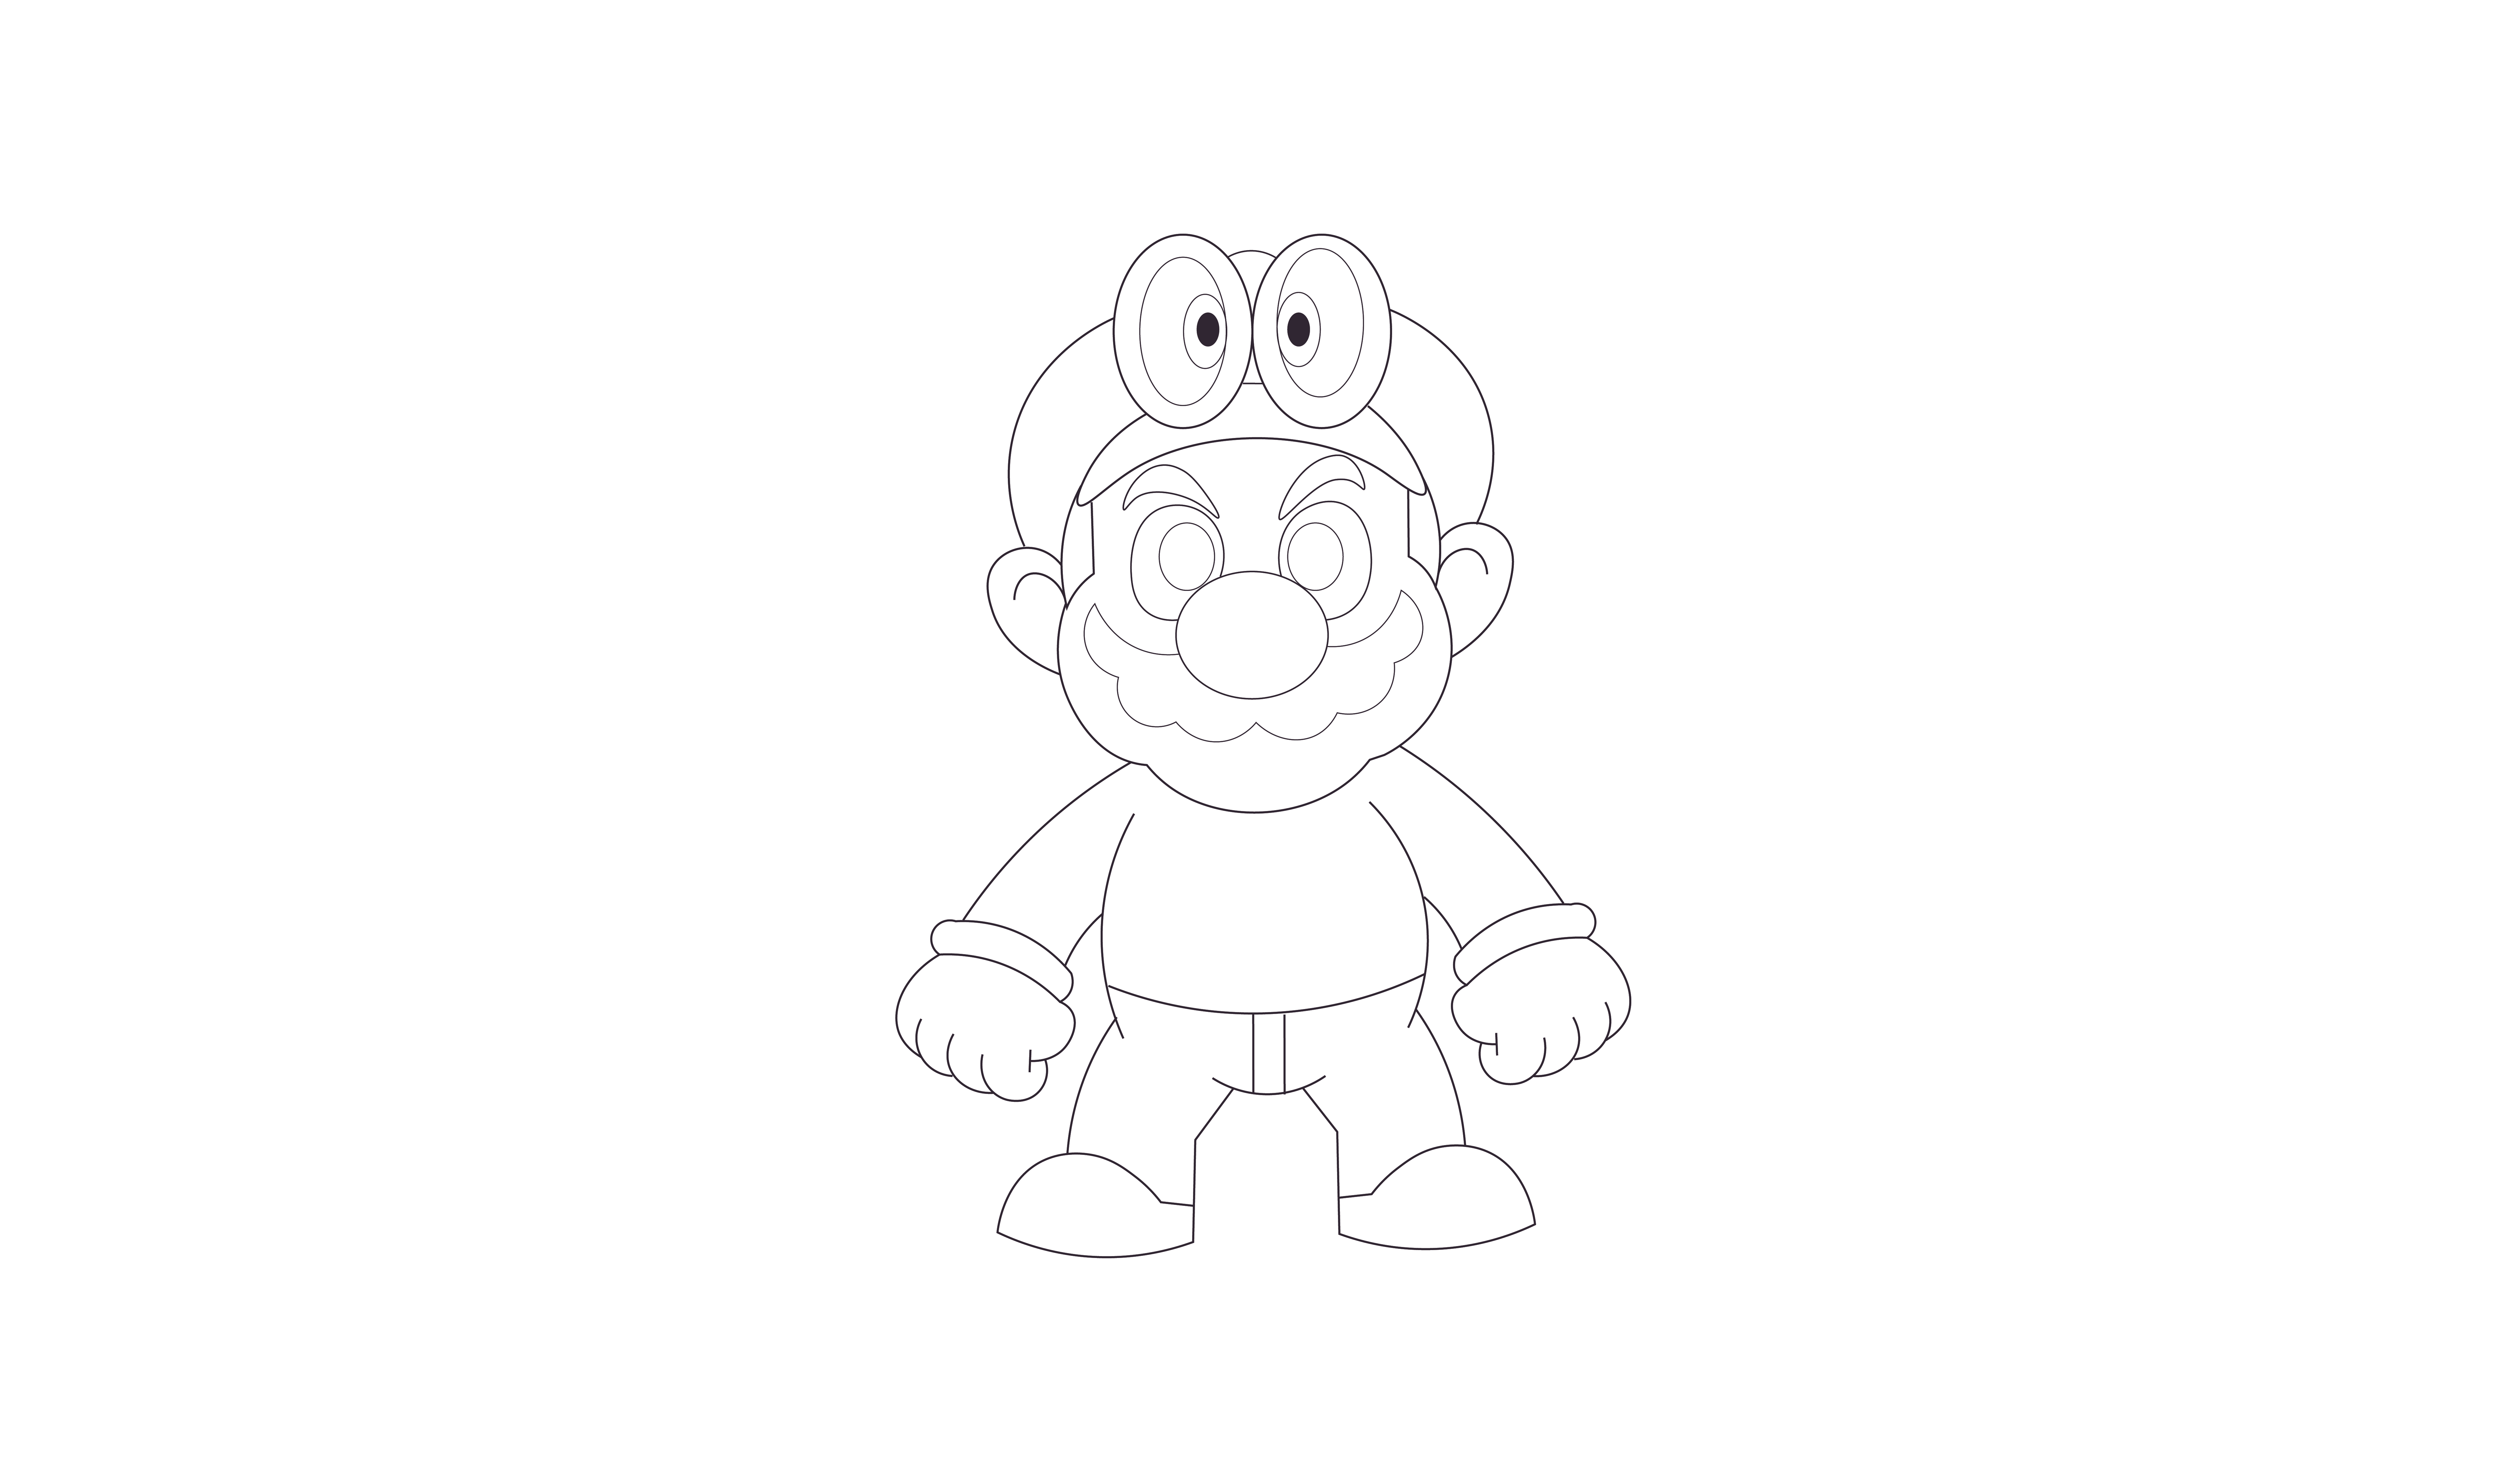 8192x4864 How To Draw Super Mario Odyssey Httpsyoutu.benf 9d4g0r4a How